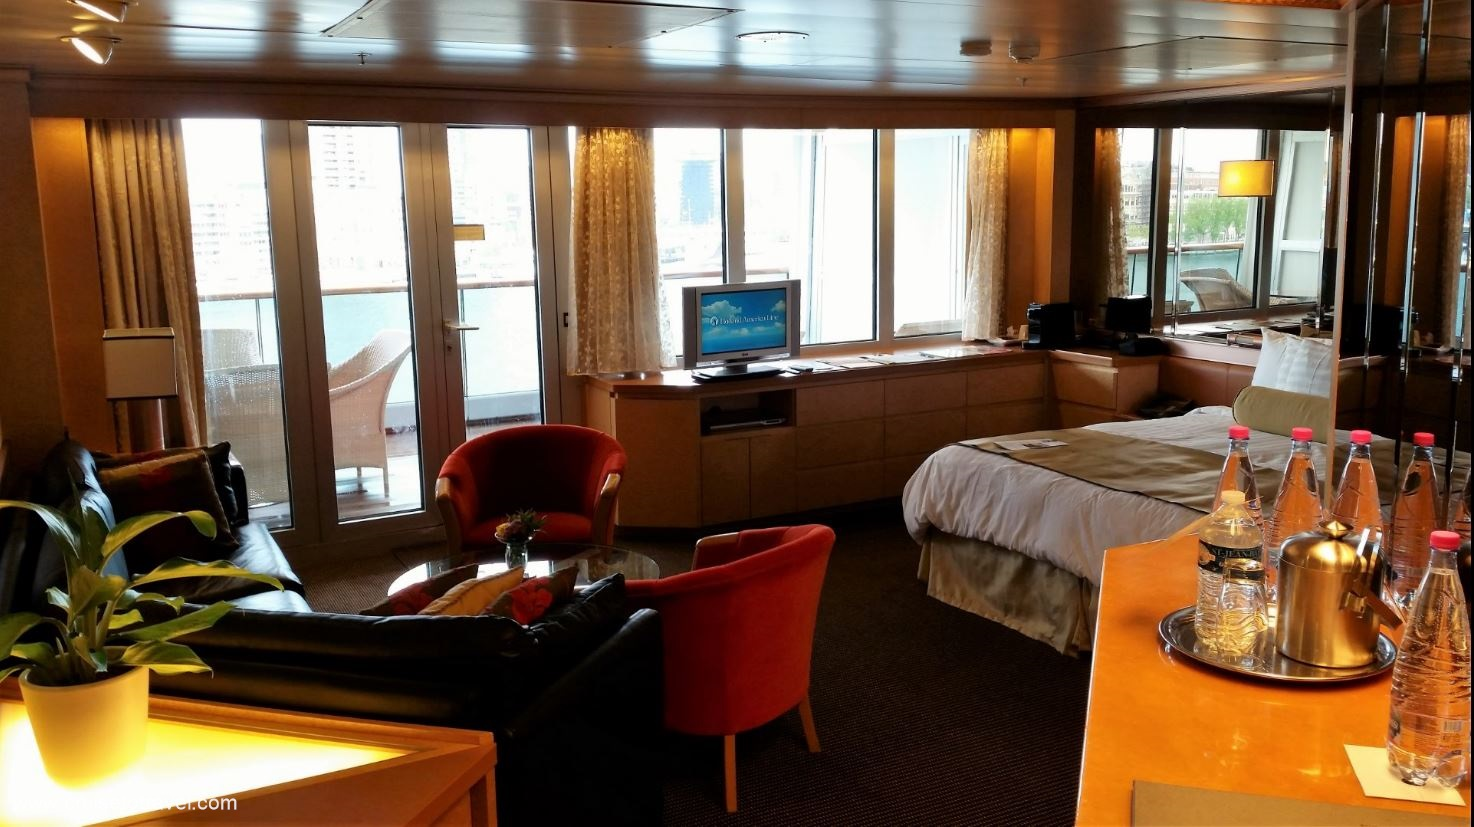 lounge suite sofa bed sets for living room in india ms rotterdam – a visit cruisetotravel